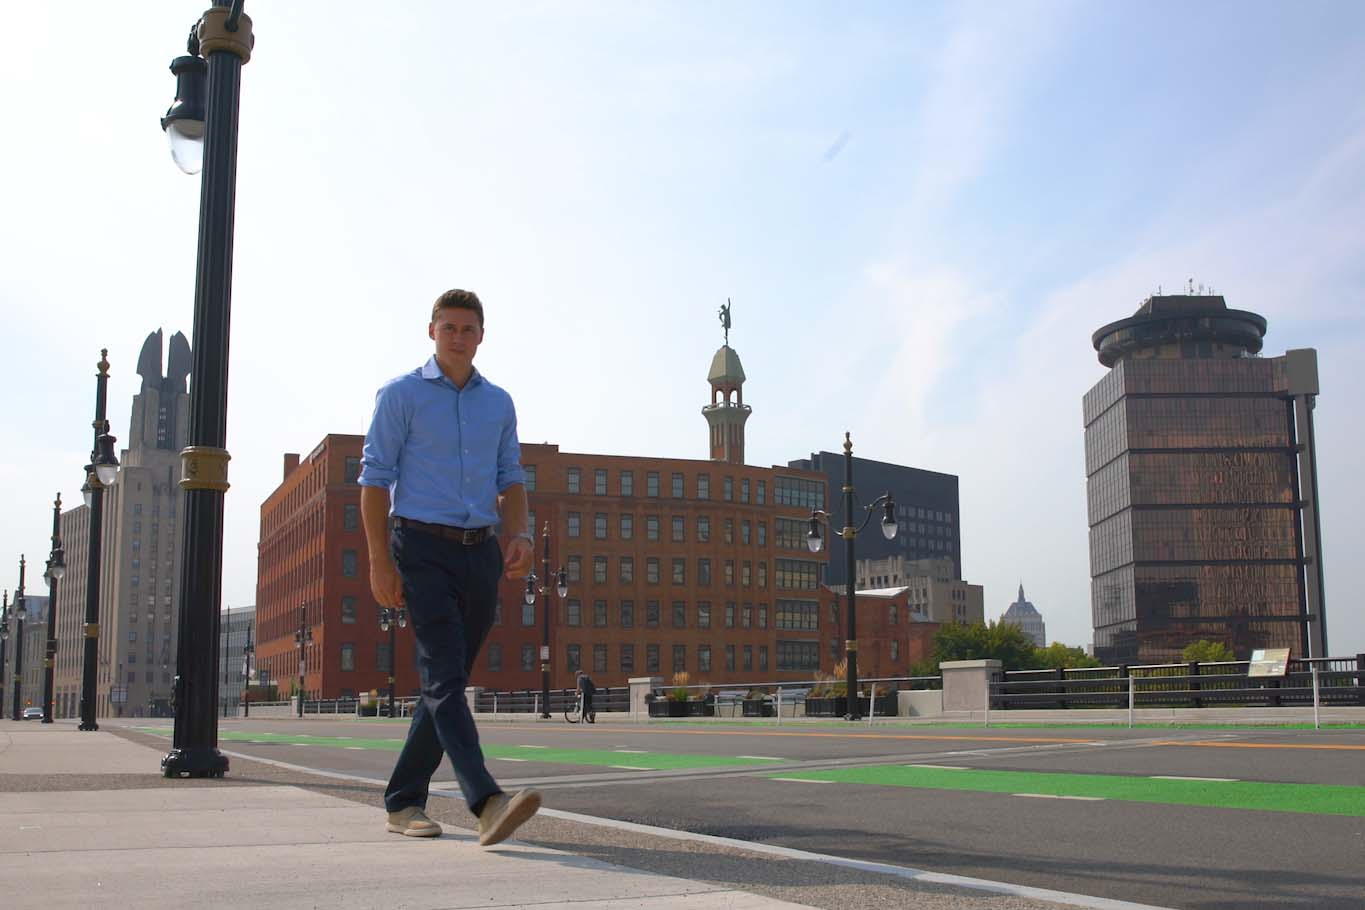 Daniel Jacob walks on sidewalk with downtown Rochester cityscape behind him